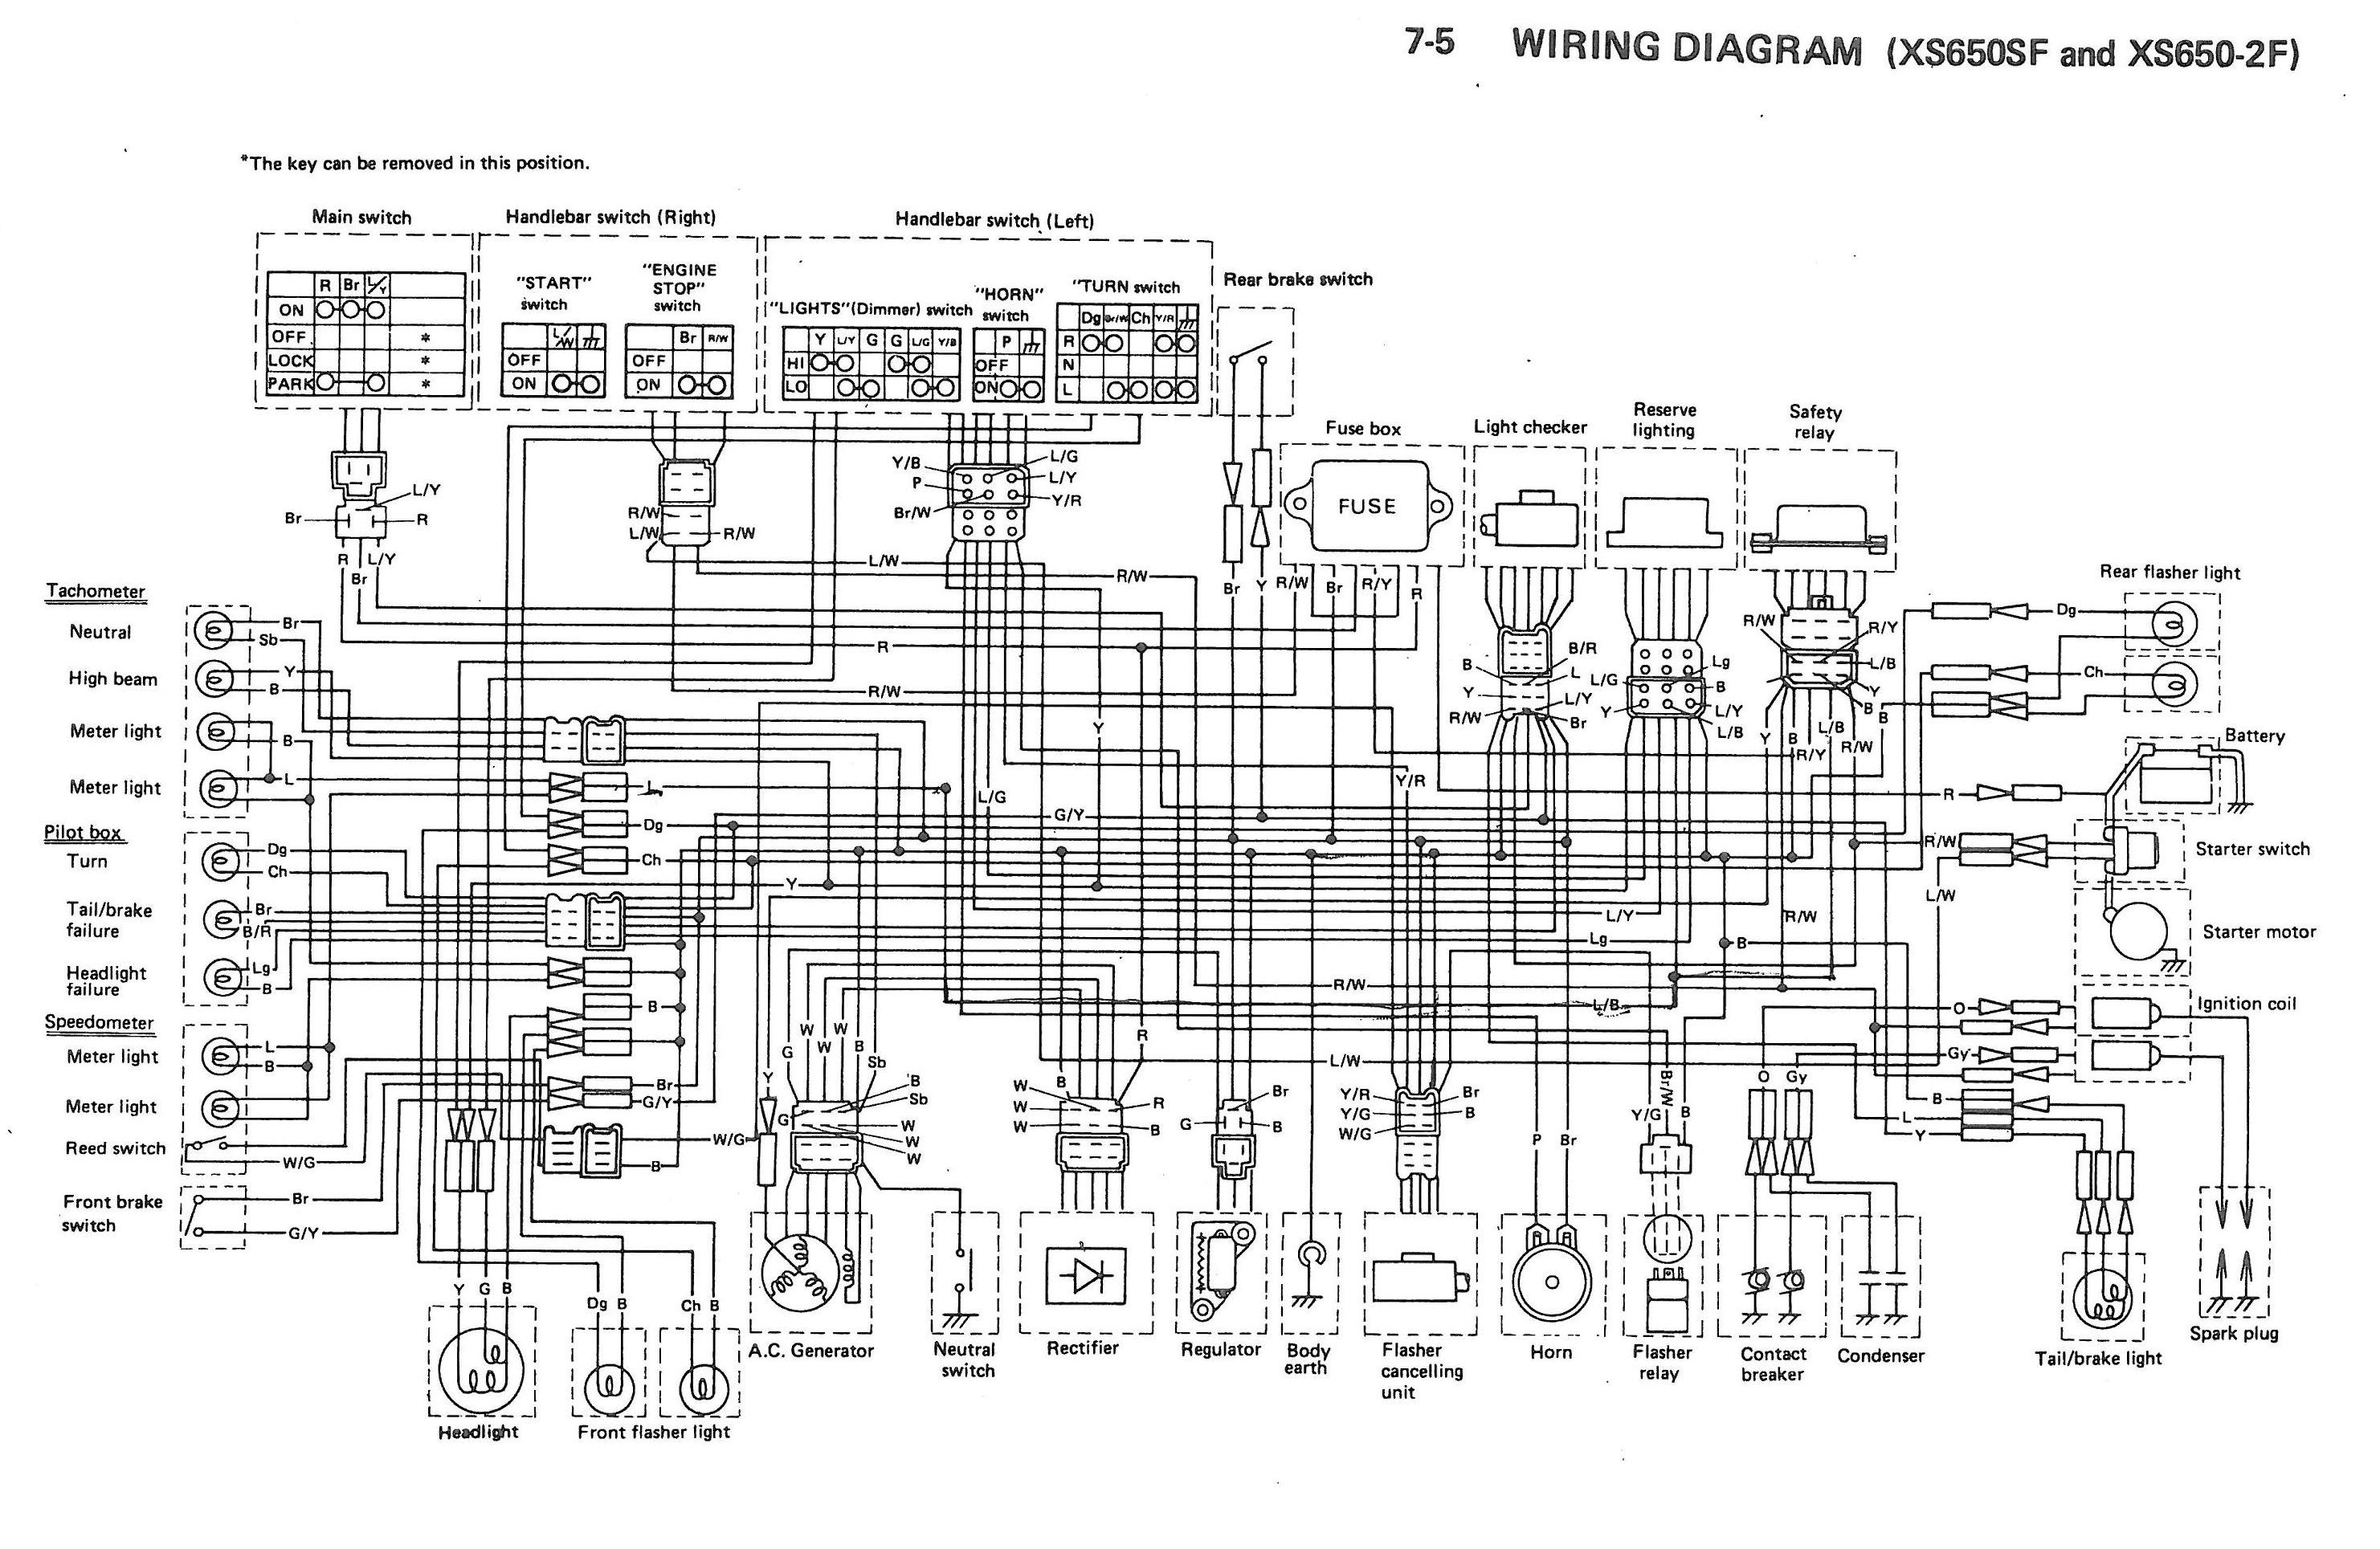 Yamaha Xs11 Wiring Diagram | Wiring Diagram on